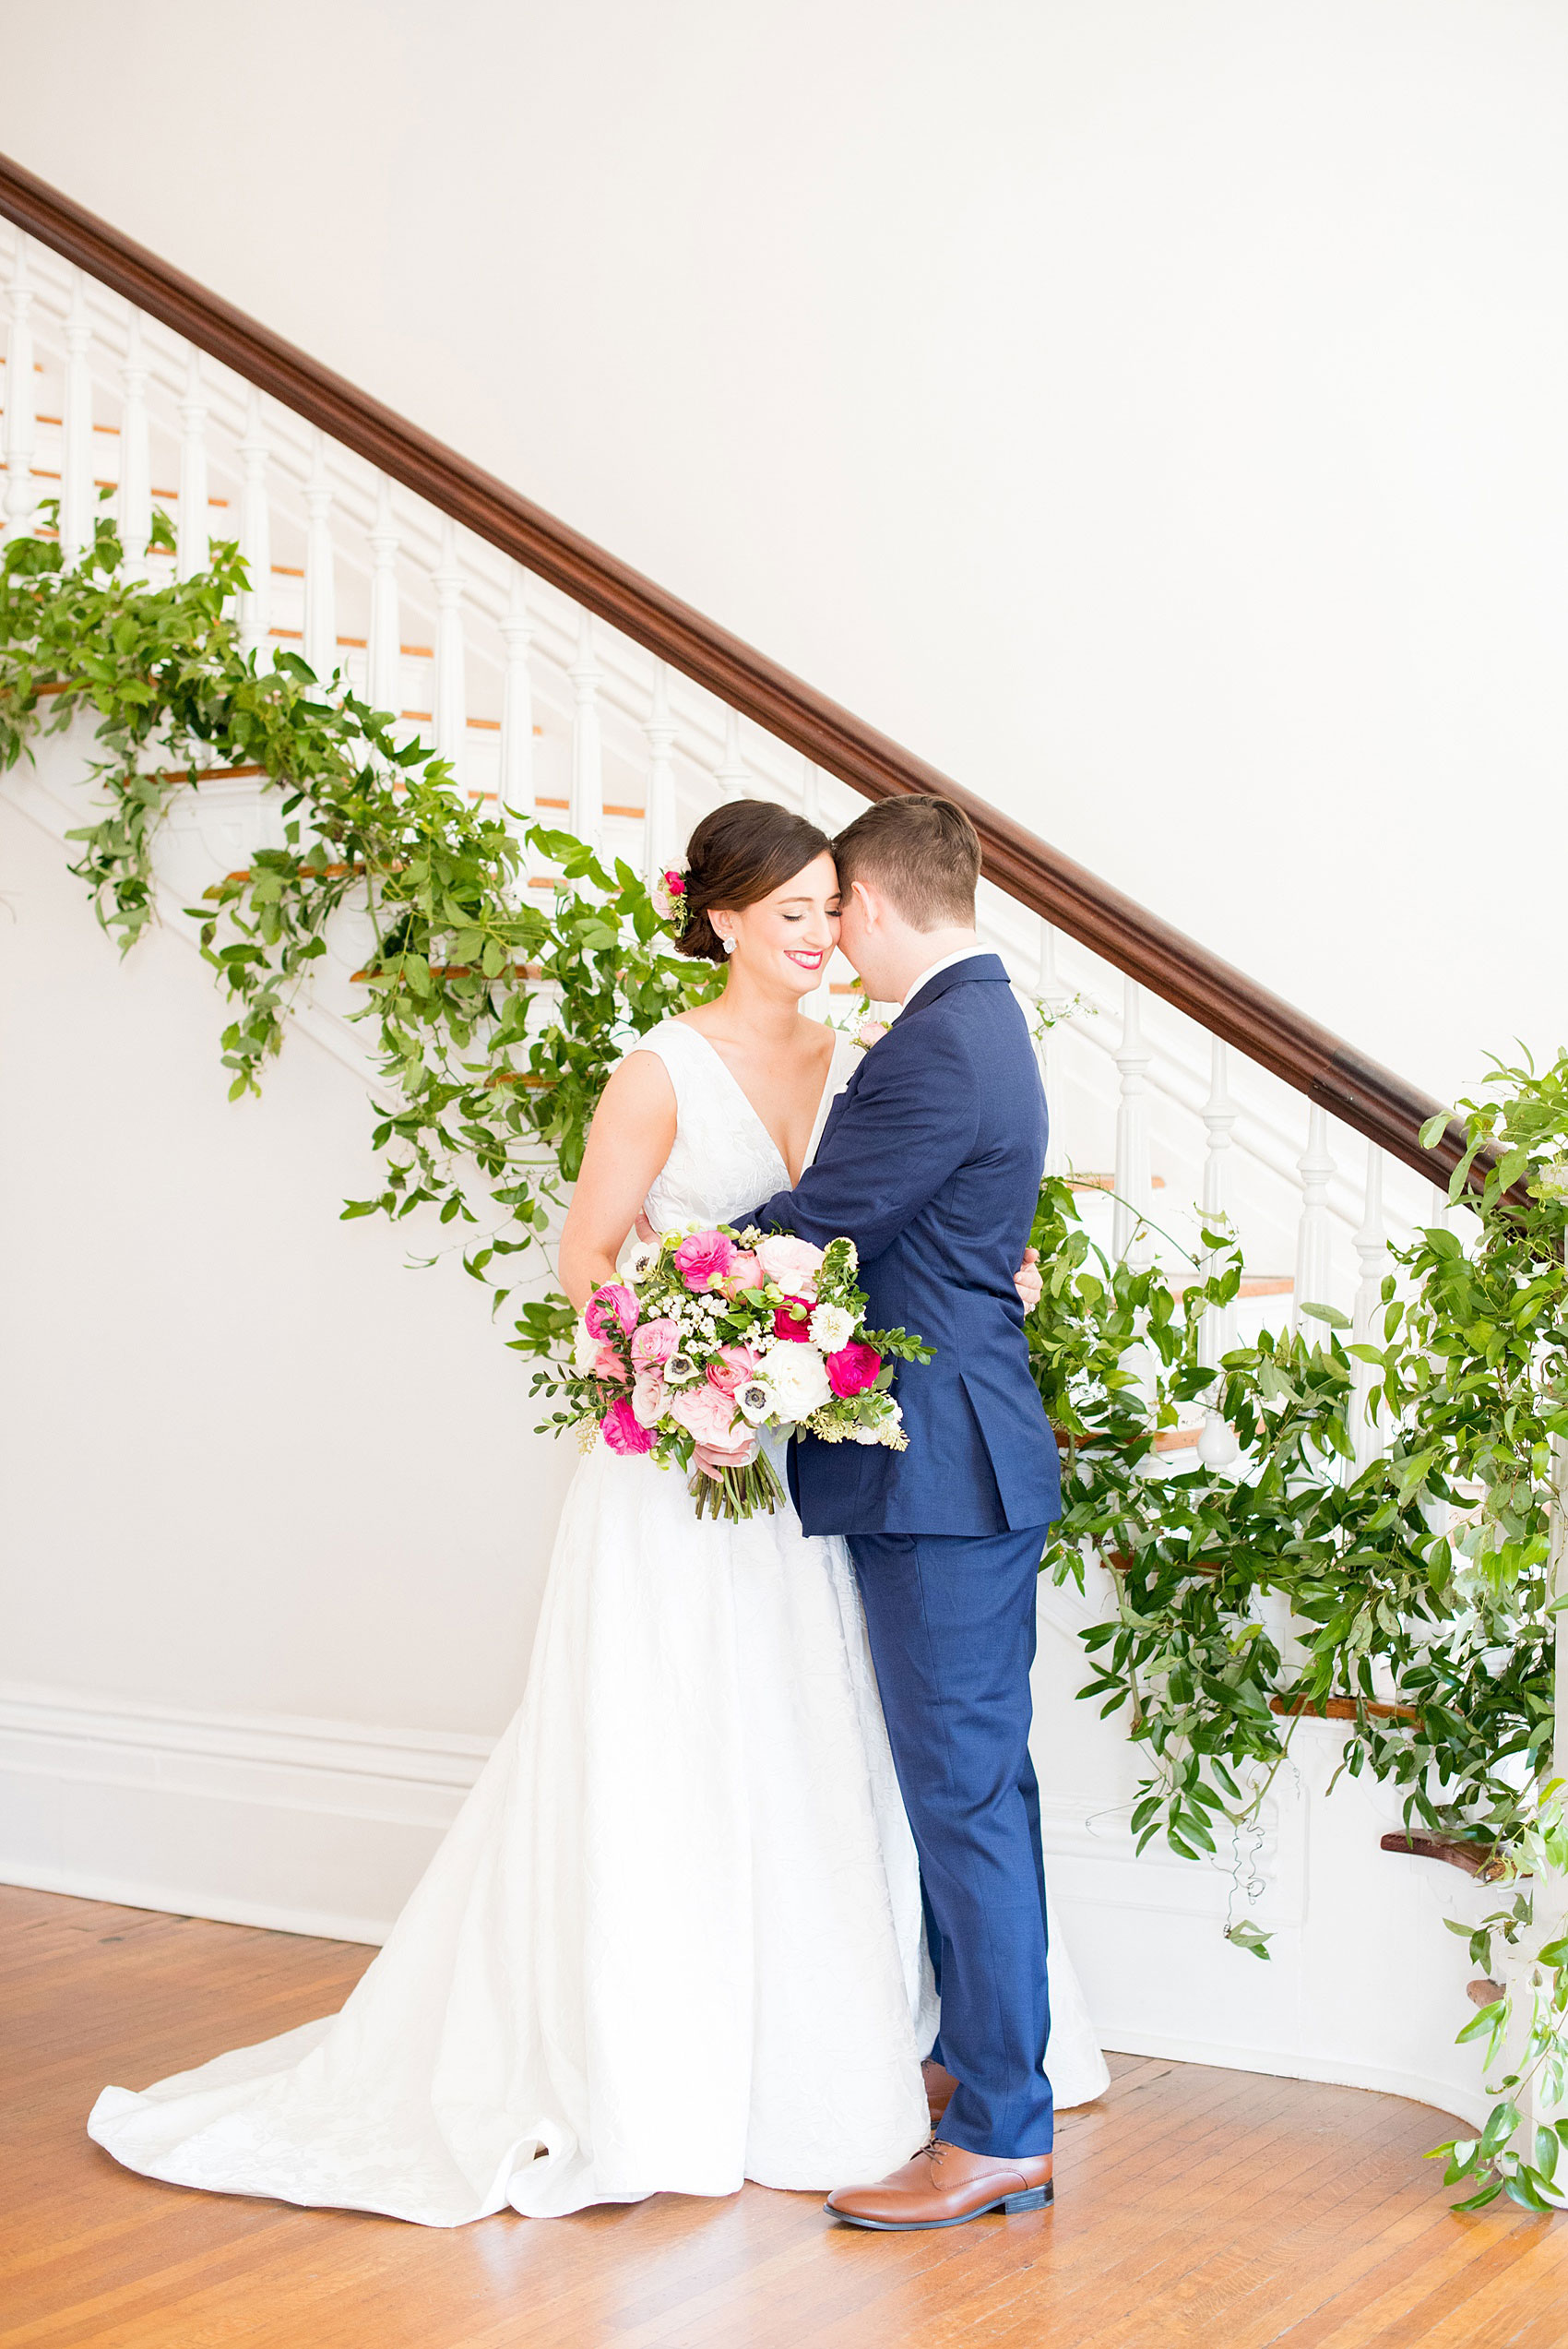 Mikkel Paige Photography pictures from a wedding at Merrimon-Wynne House in Raleigh, NC. Photo of the bride and groom near the staircase of the historic home.